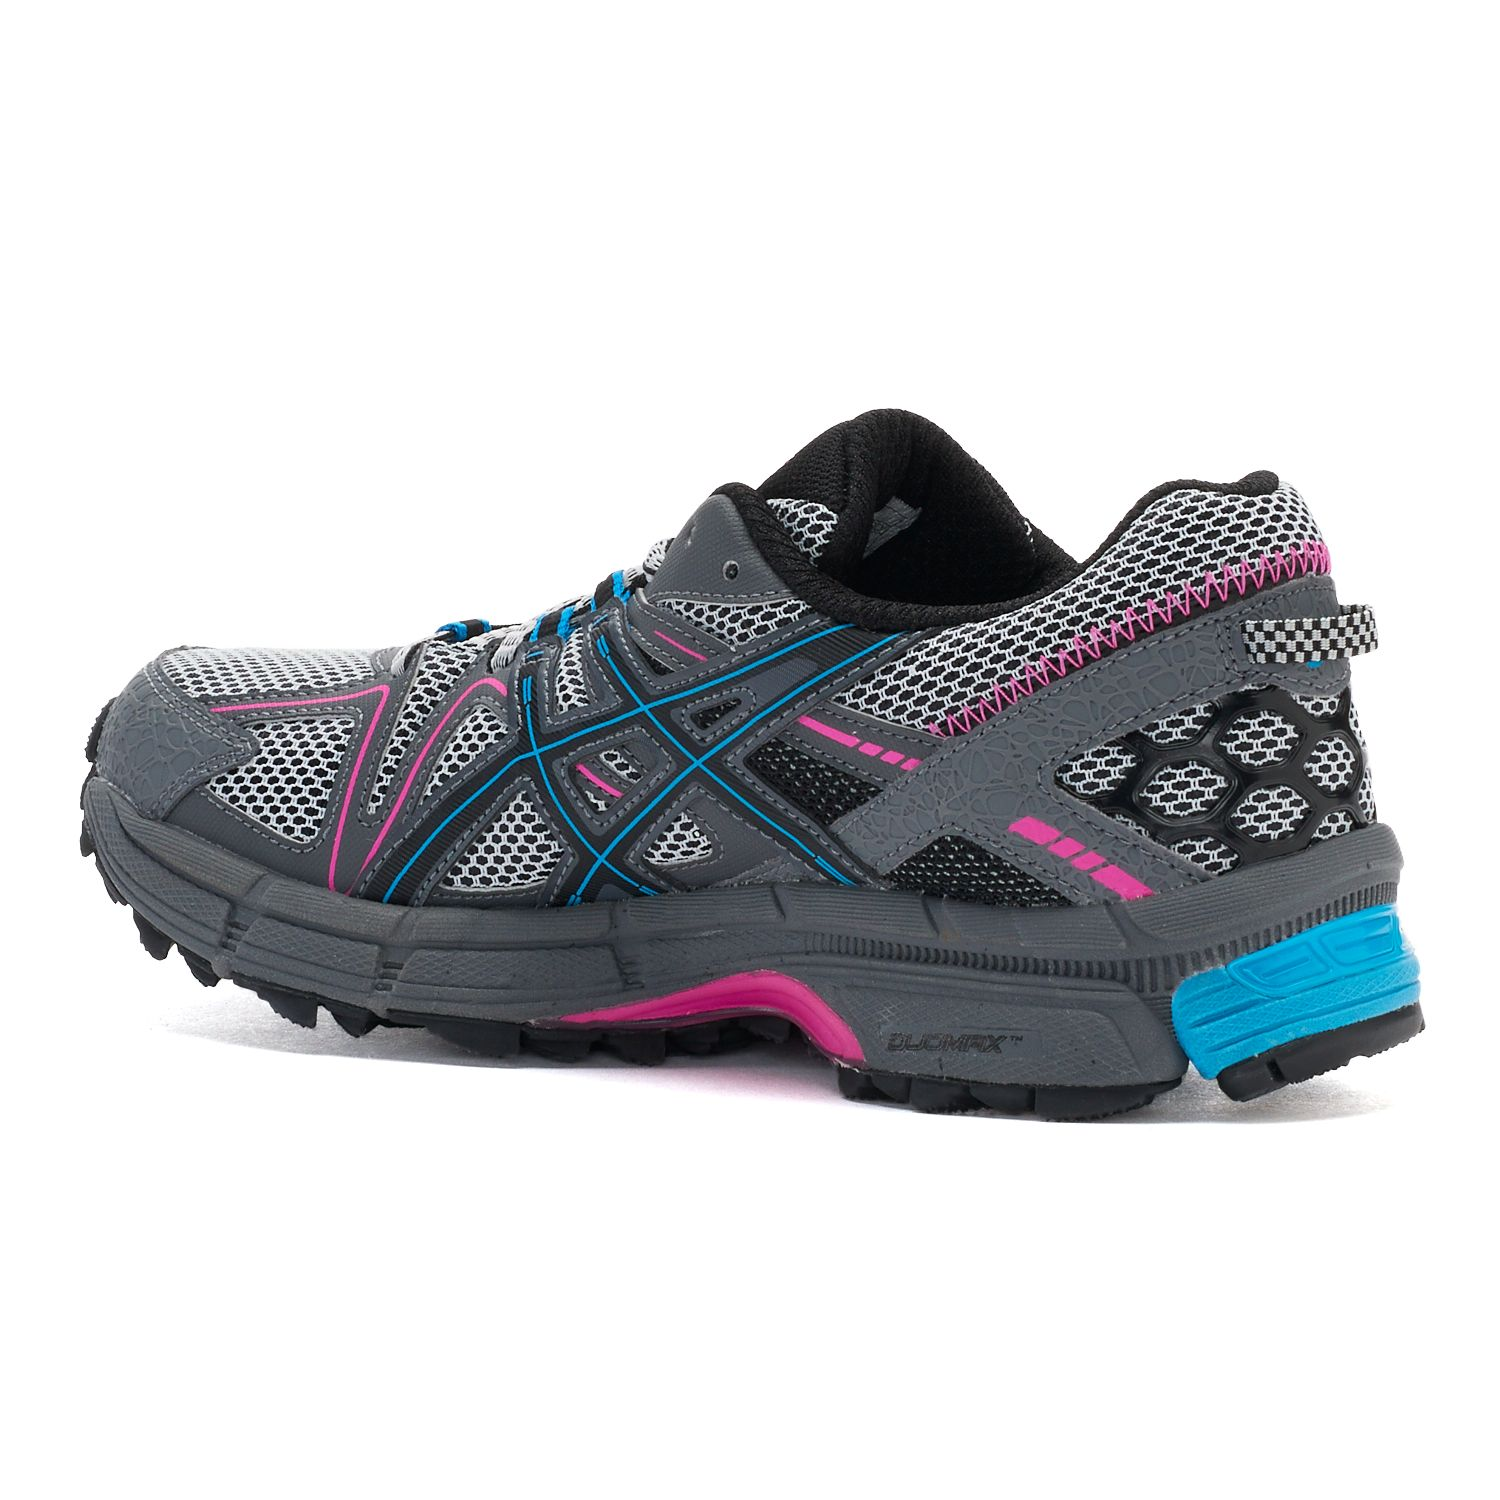 9c9d3174f174 Trail Running Shoes